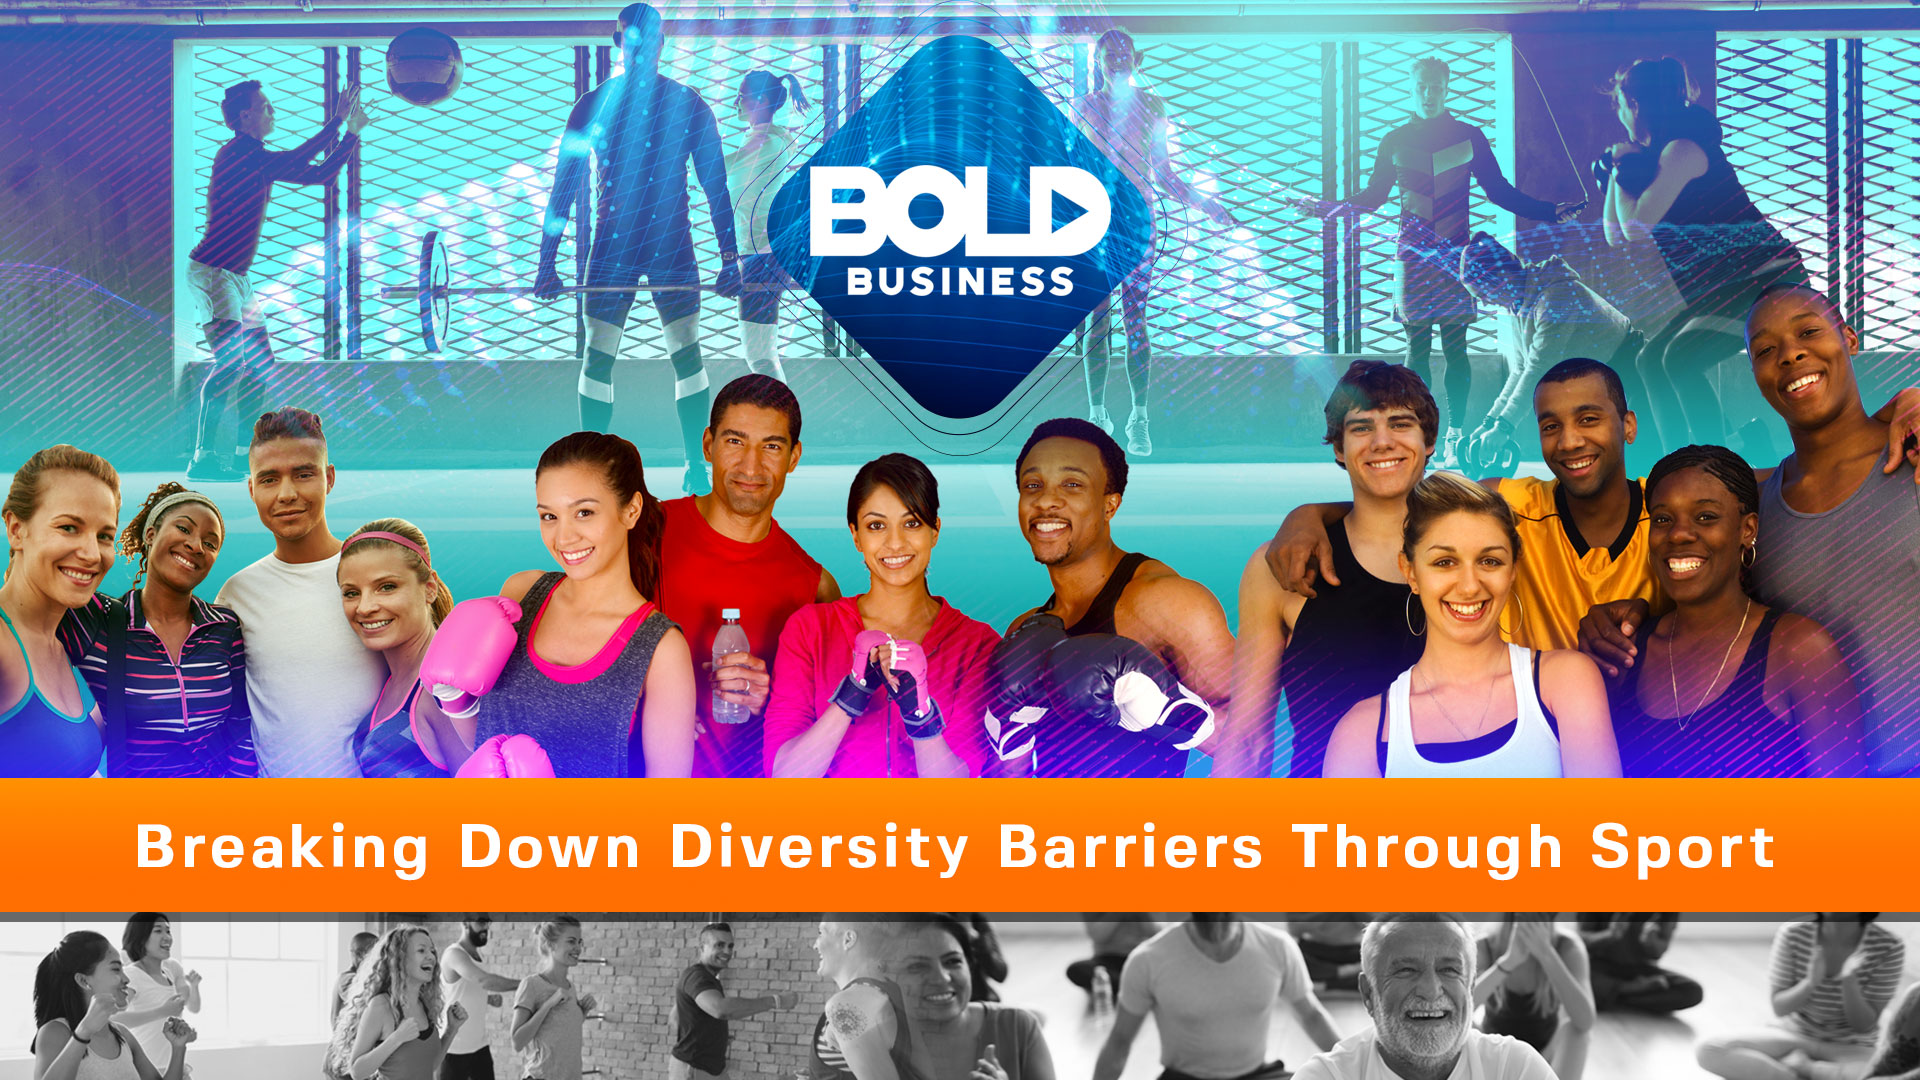 breaking down diversity barriers through sports